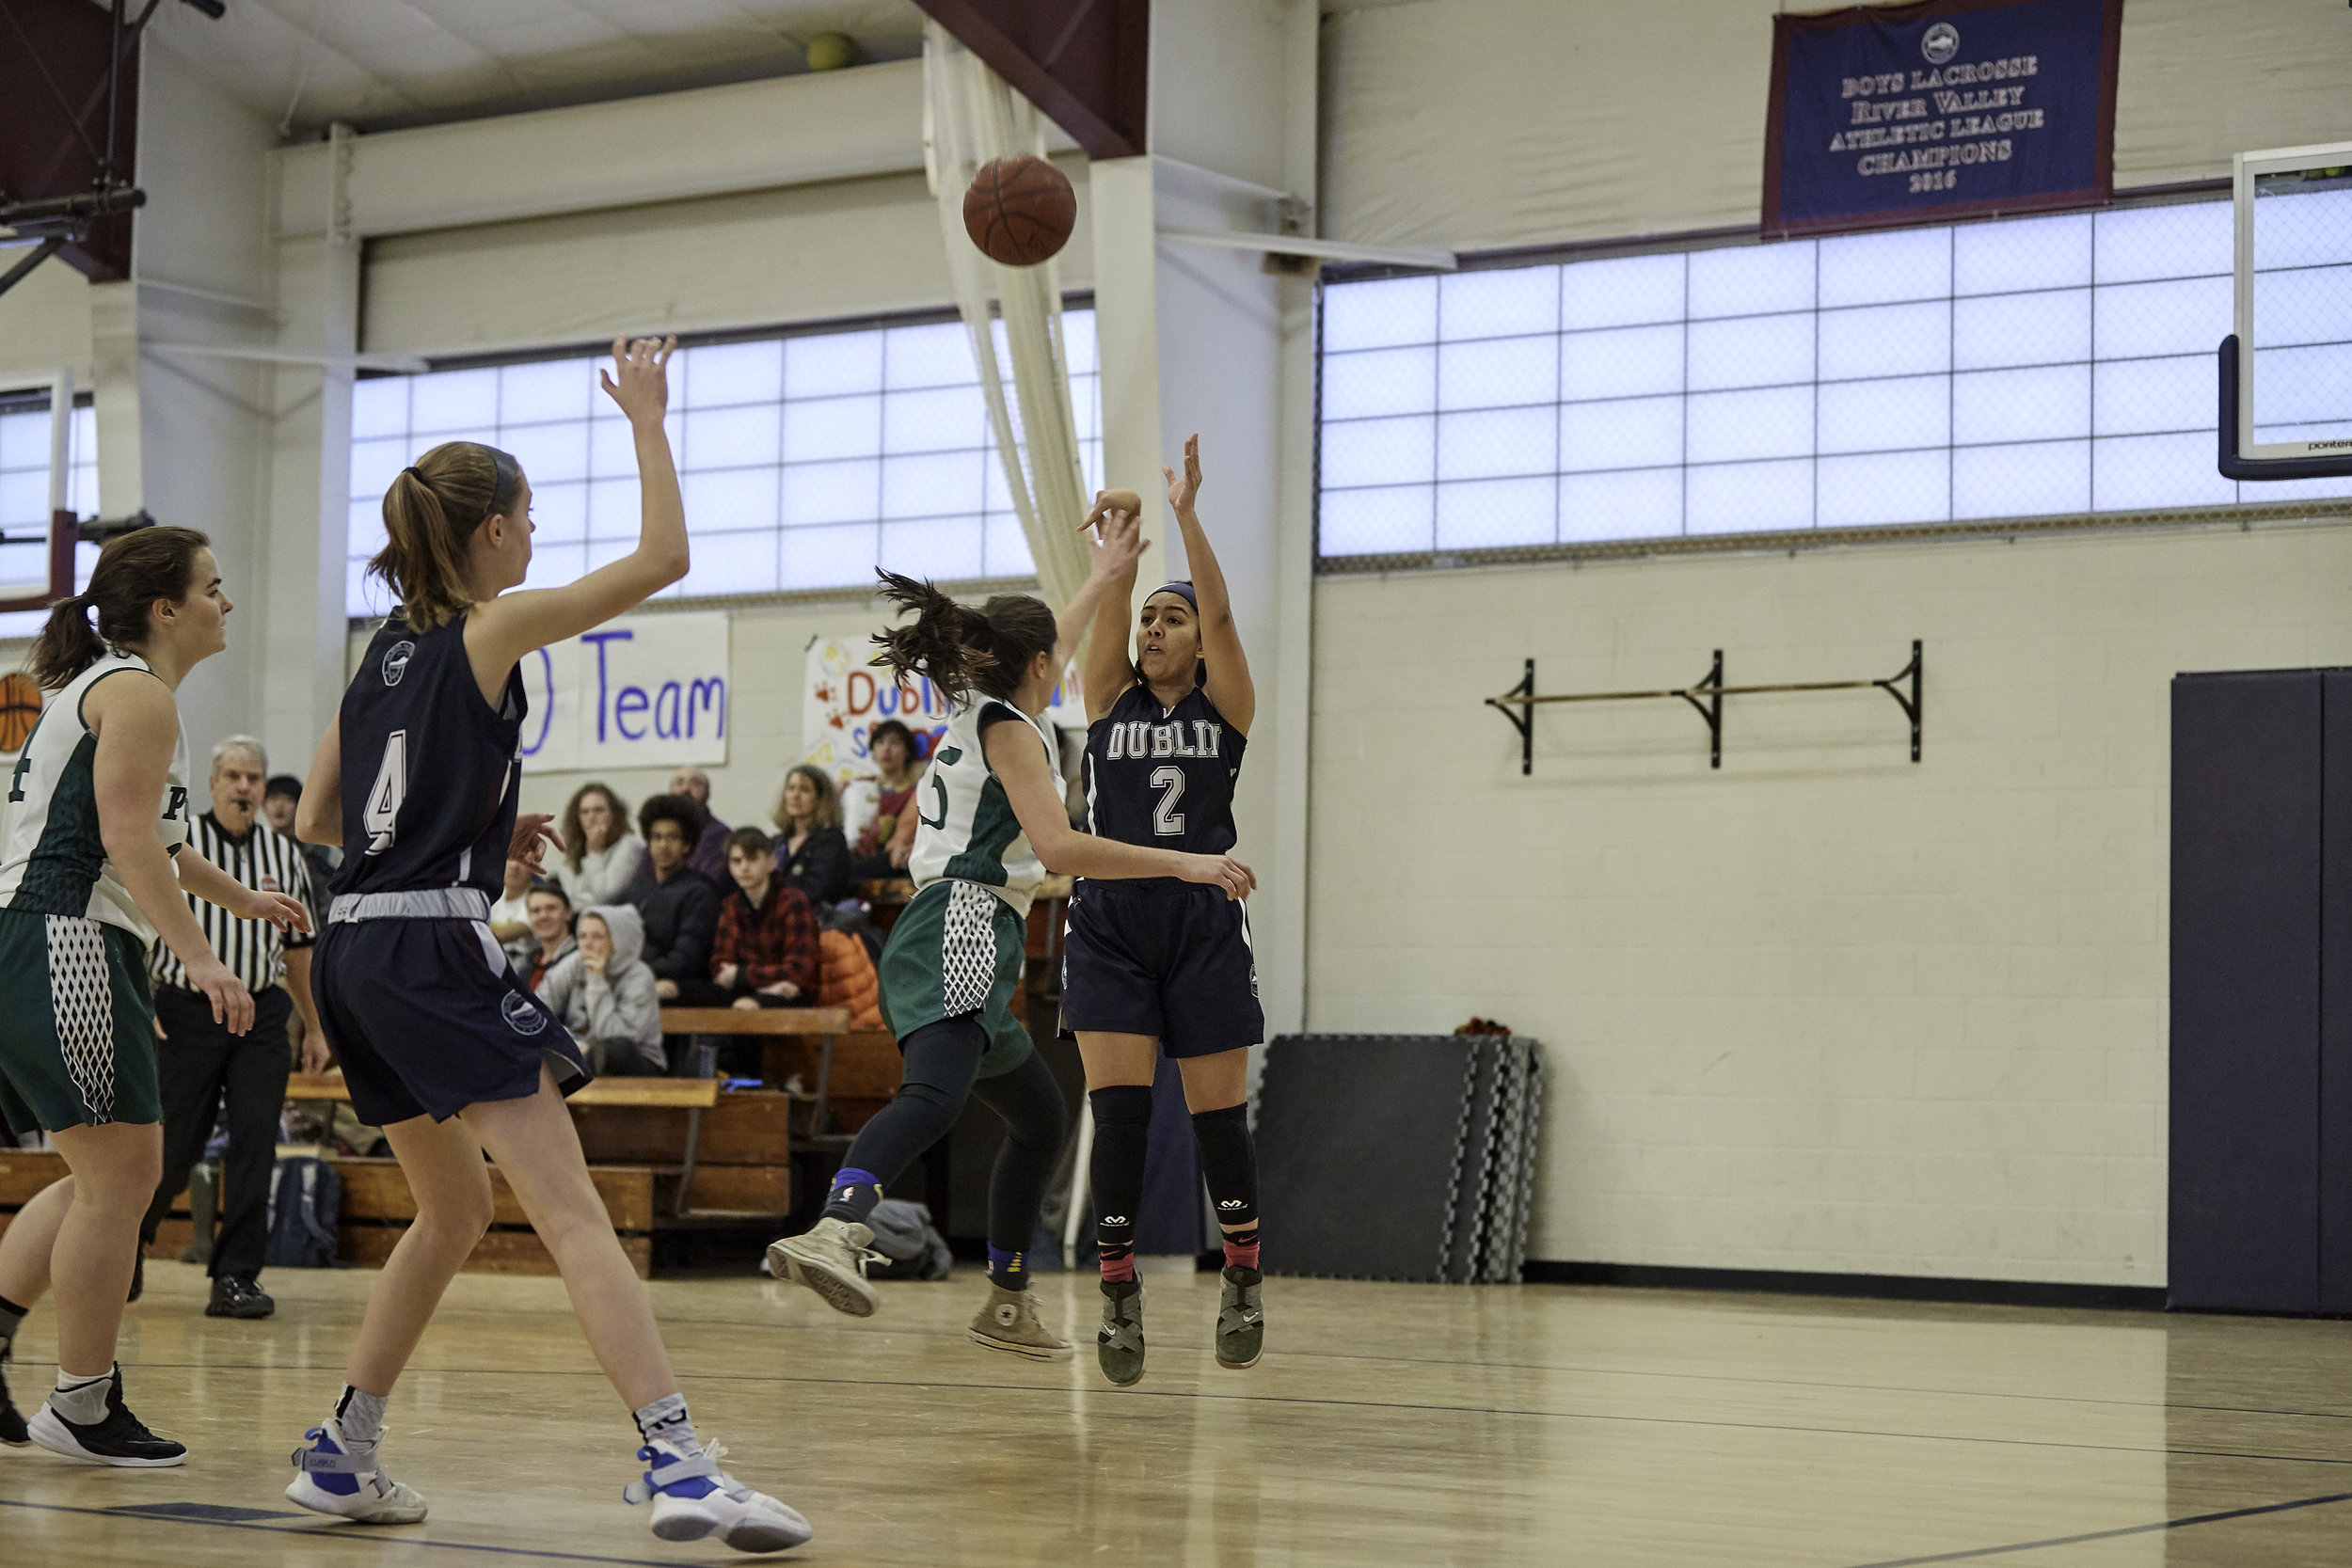 Basketball vs Putney School, February 9, 2019 - 167123.jpg